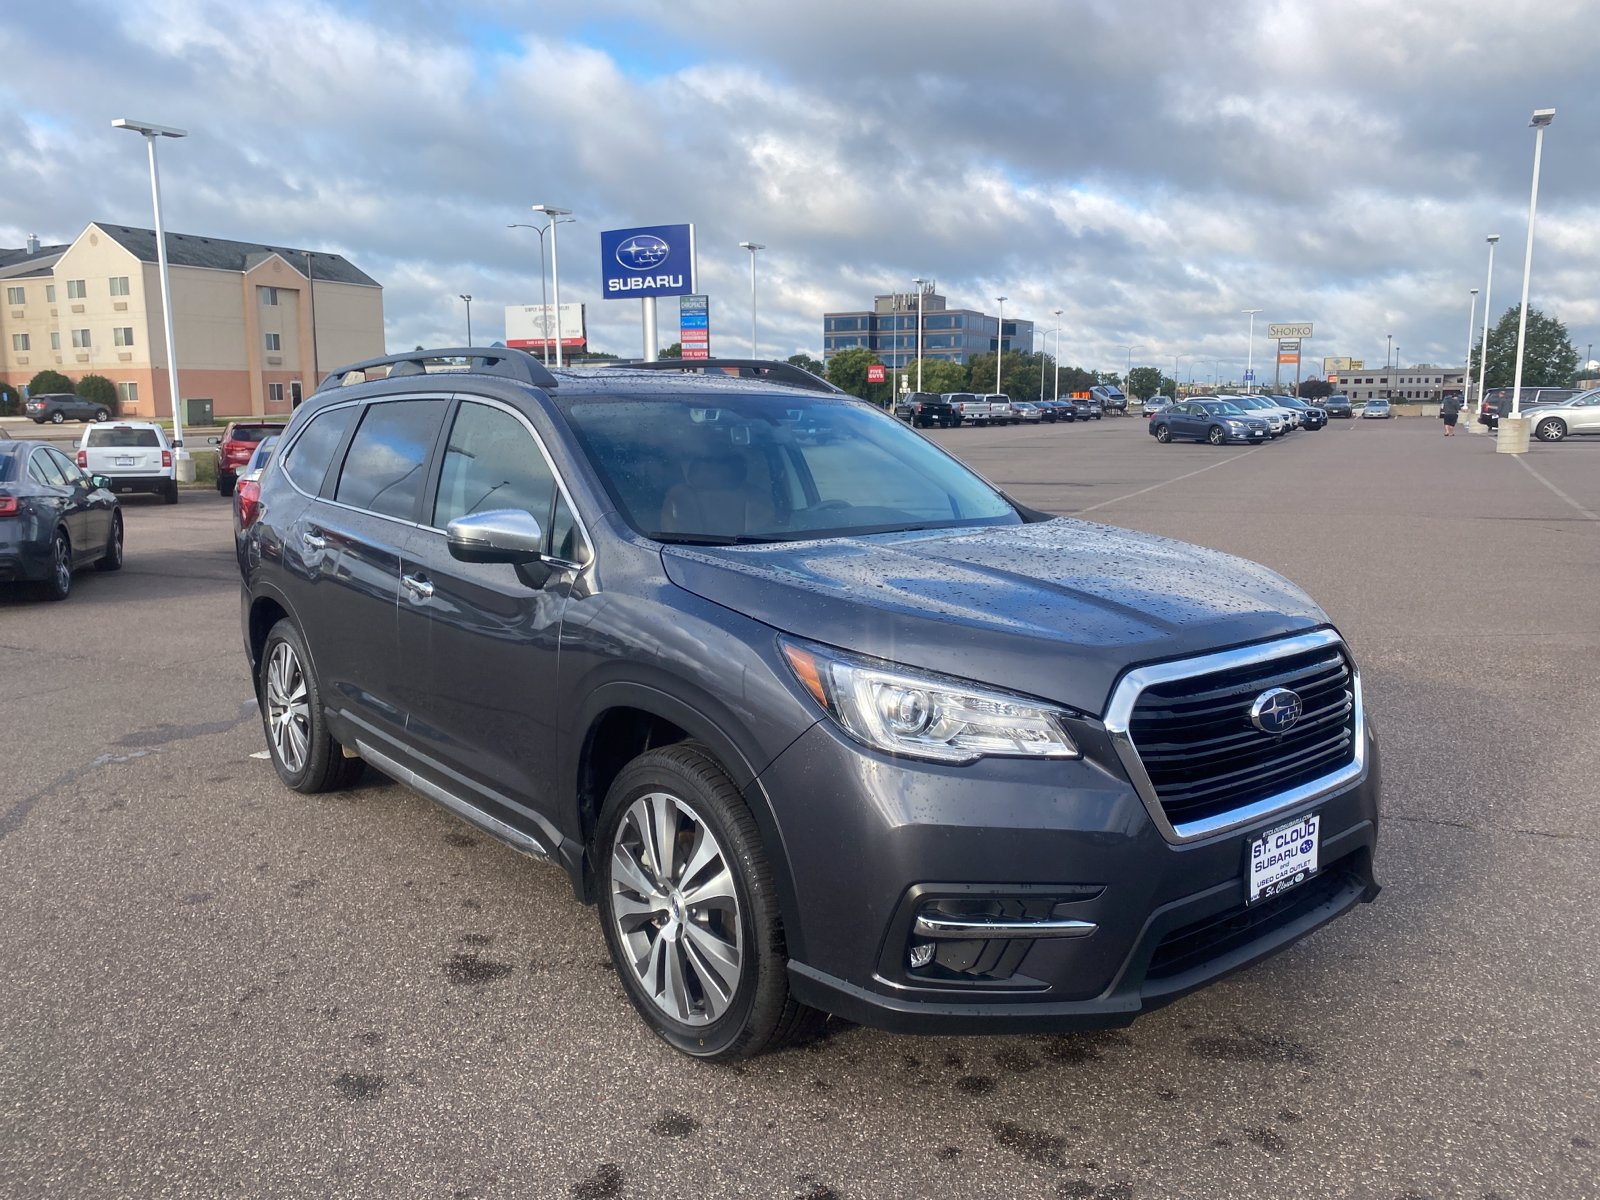 Used 2020 Subaru Ascent Touring with VIN 4S4WMARD4L3455409 for sale in Saint Cloud, Minnesota